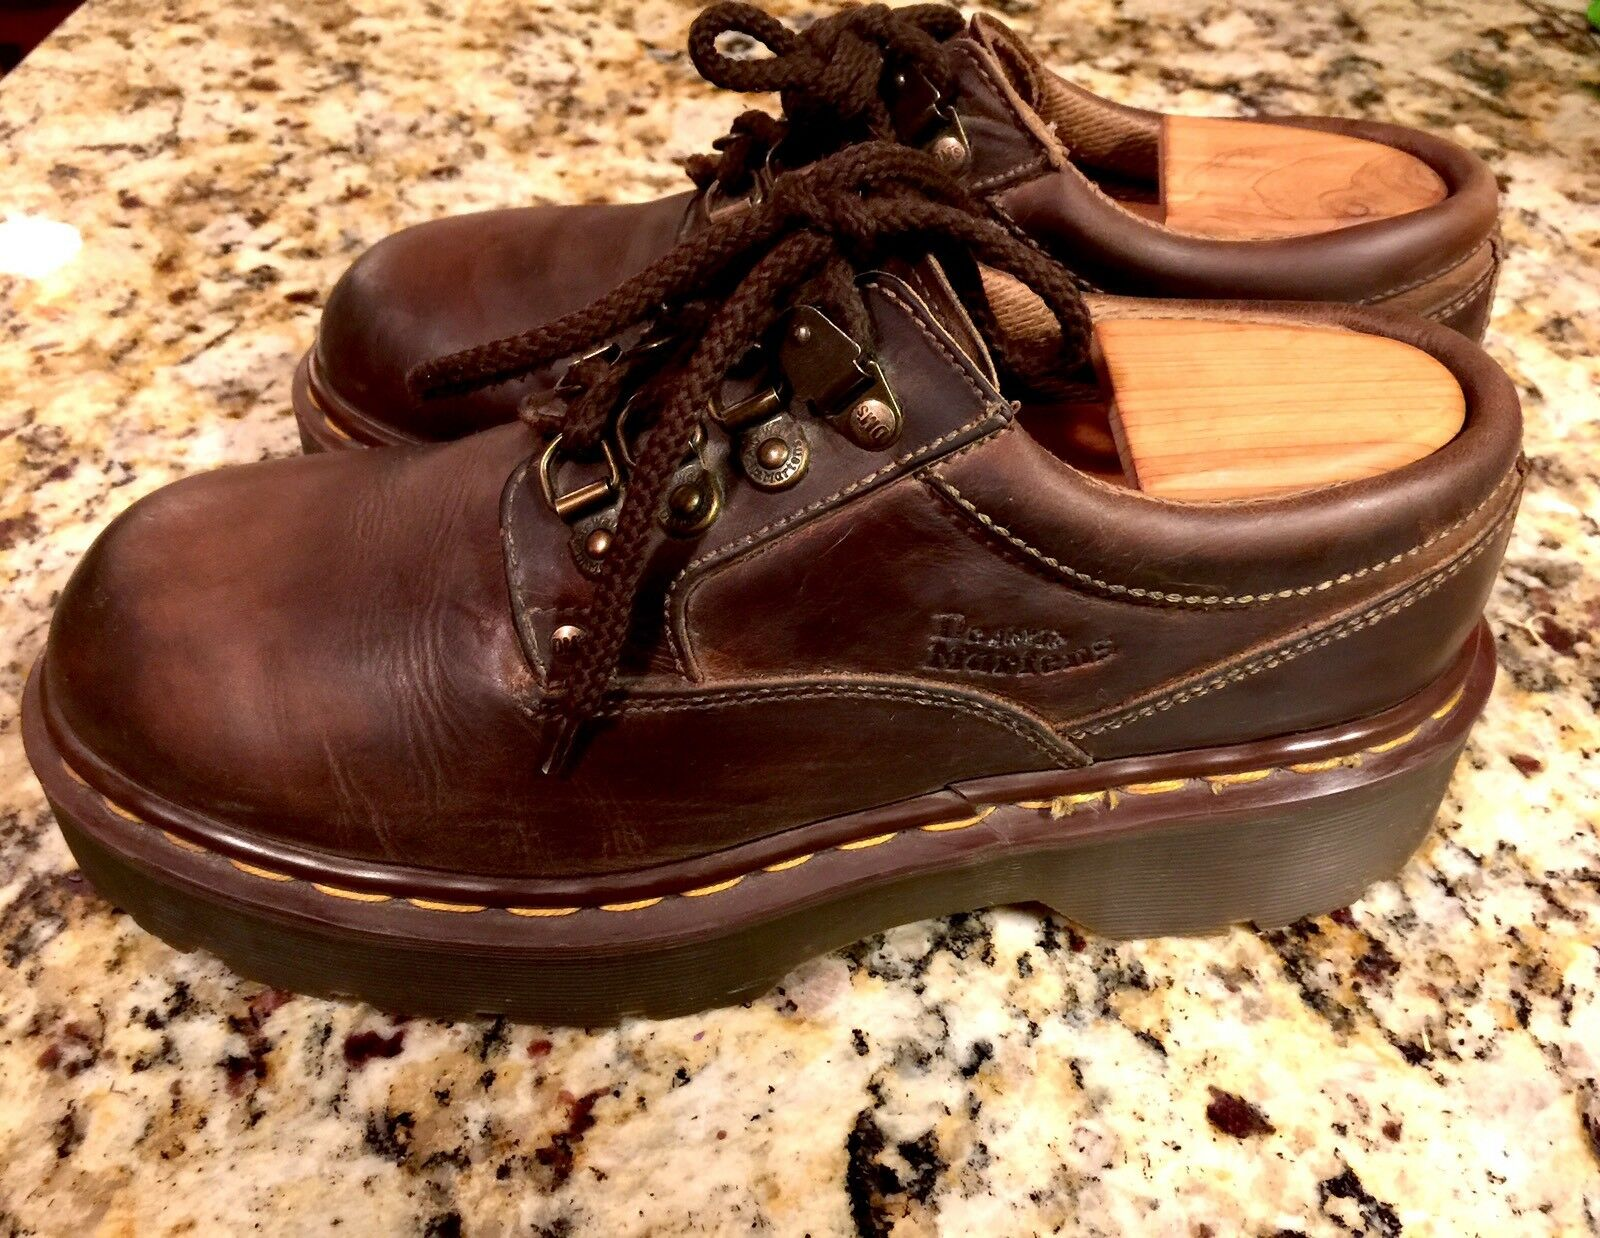 Dr. Martens Air Wair Low Boots Brown Leather  Rustic Men's   Boys Size 7